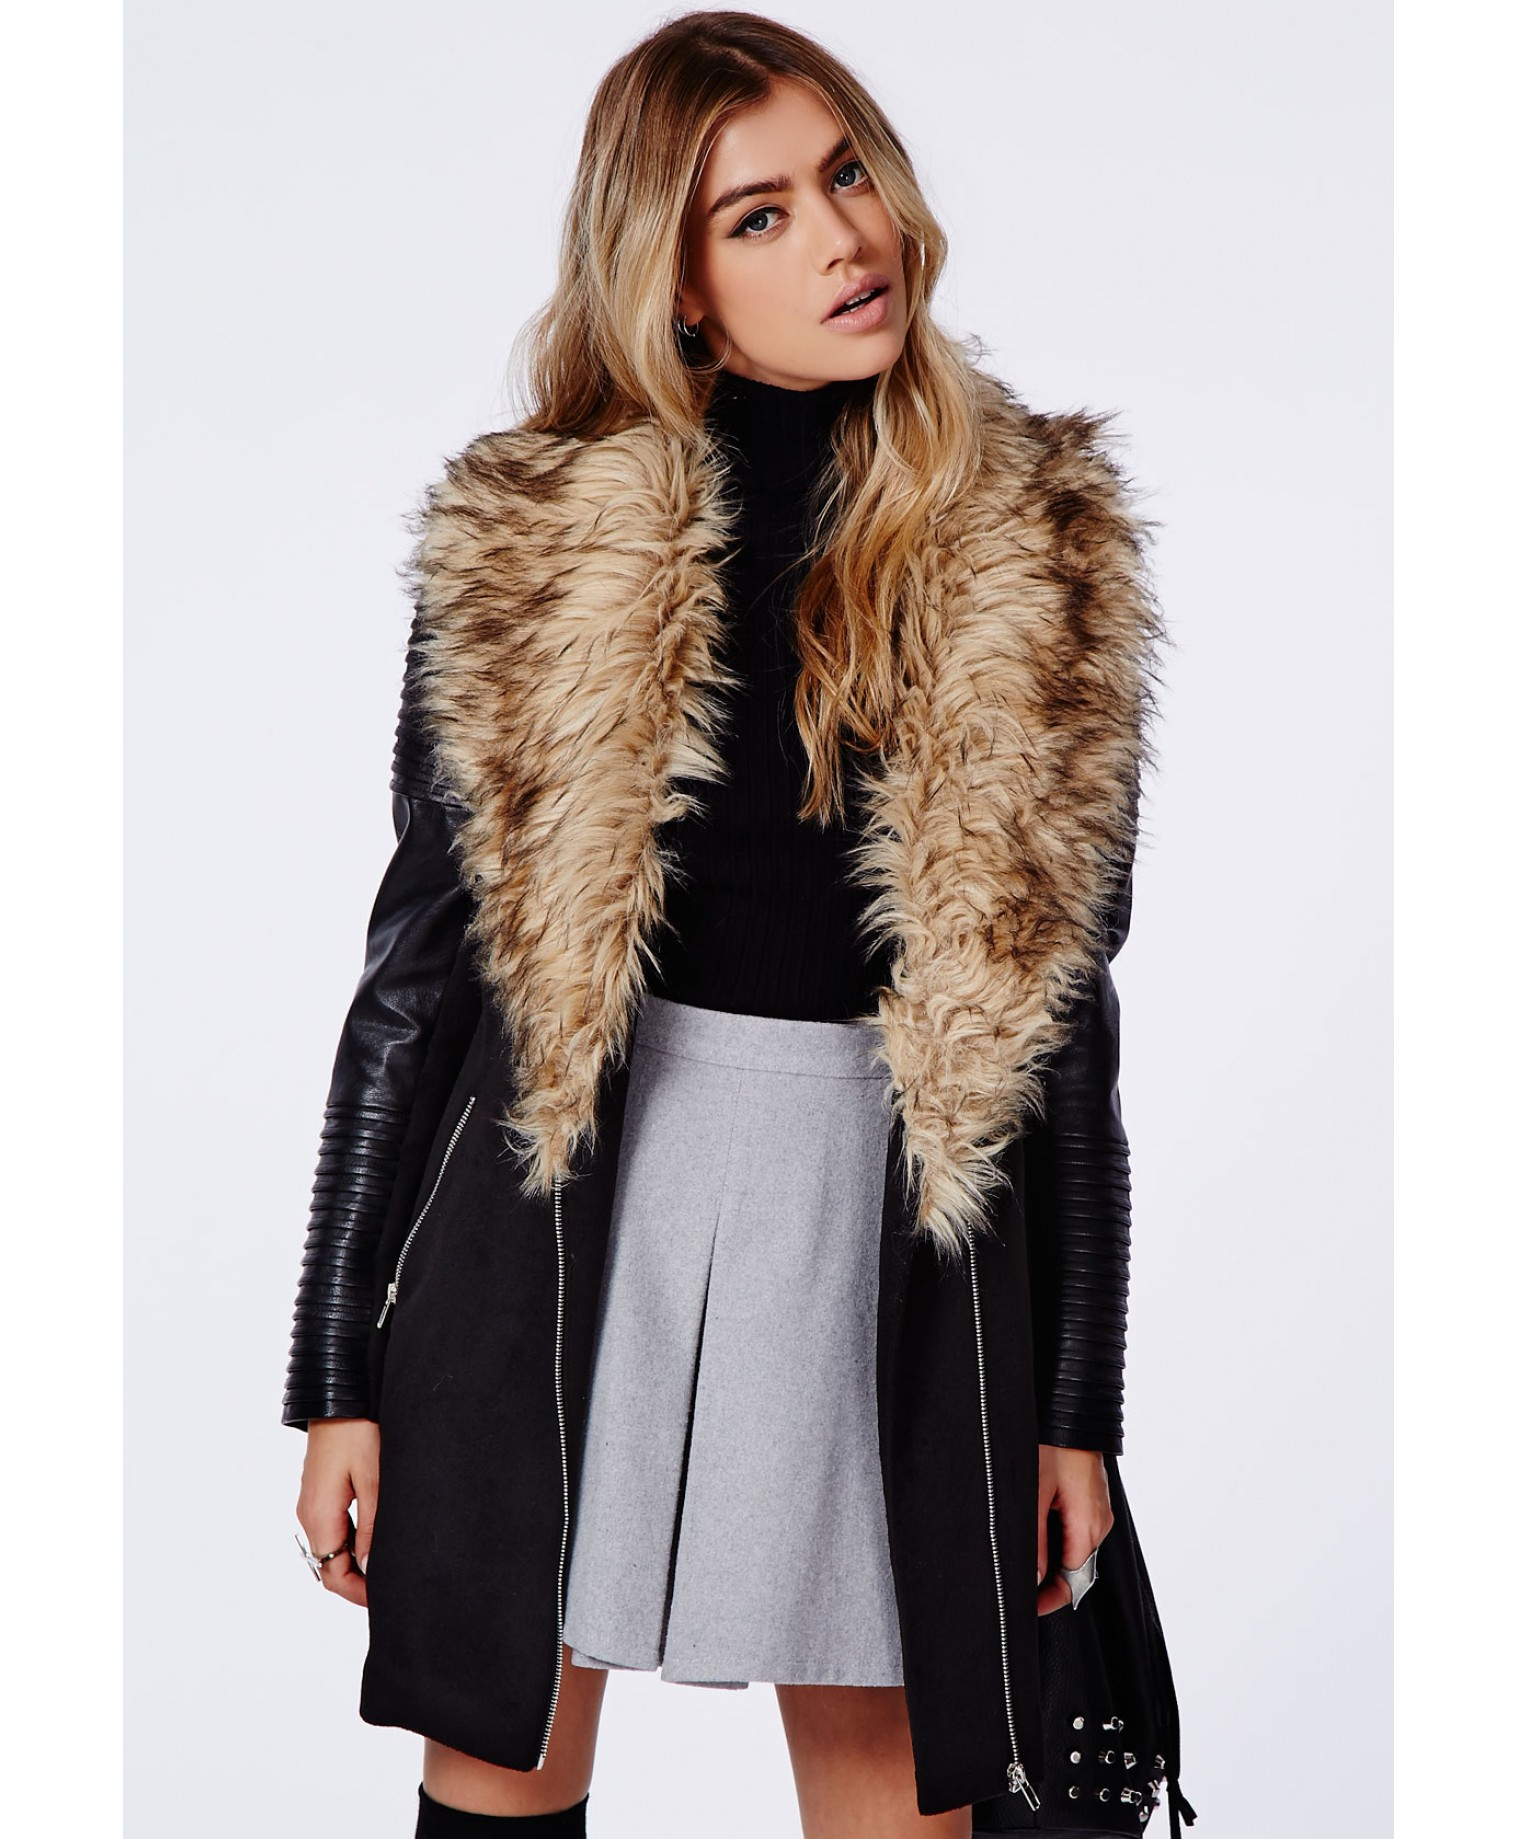 Women's Apparel, Coats & Jackets, Leather & Faux Leather at disborunmaba.ga, offering the modern energy, style and personalized service of Saks Fifth Avenue stores, in .